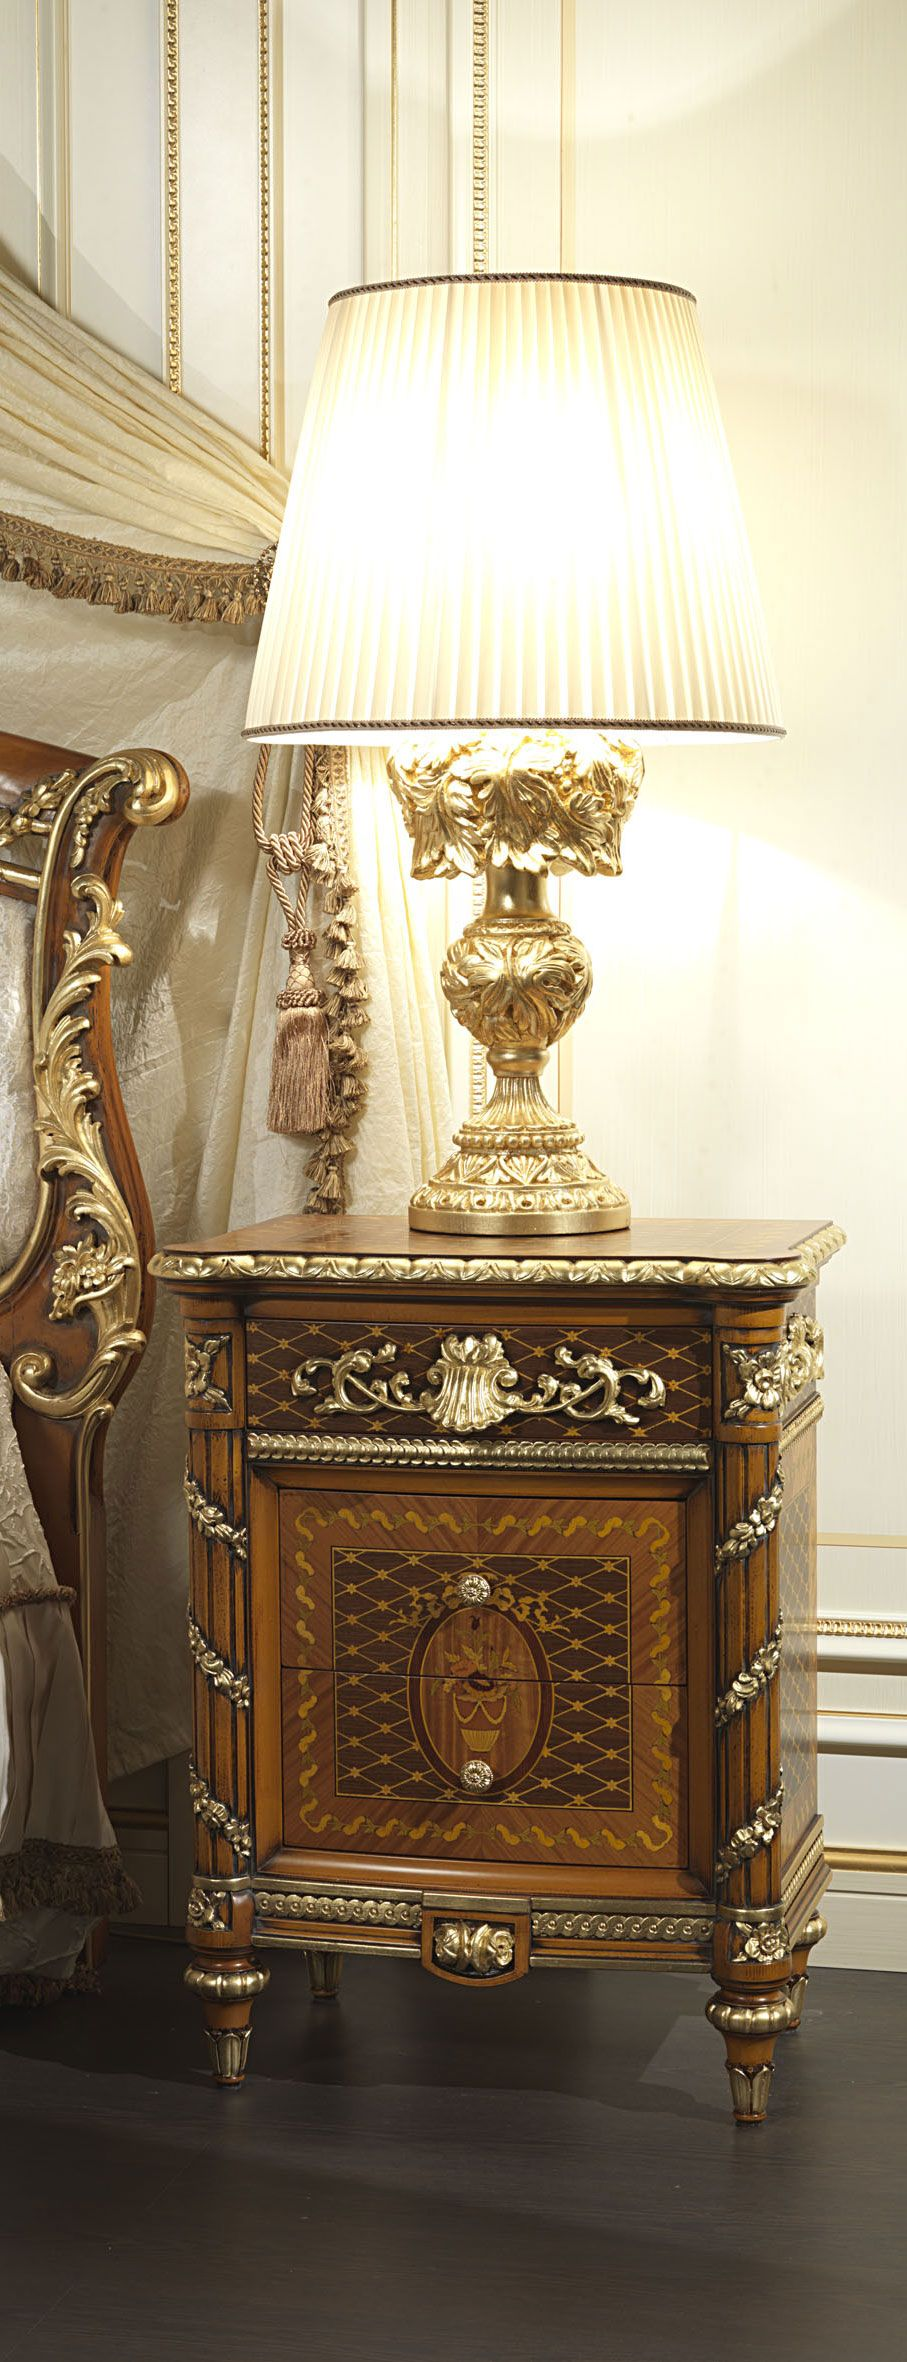 Louis xvi bedroom furniture - Classic Luxury Lamp And Bedside Table Louis Xvi Vimercati Meda